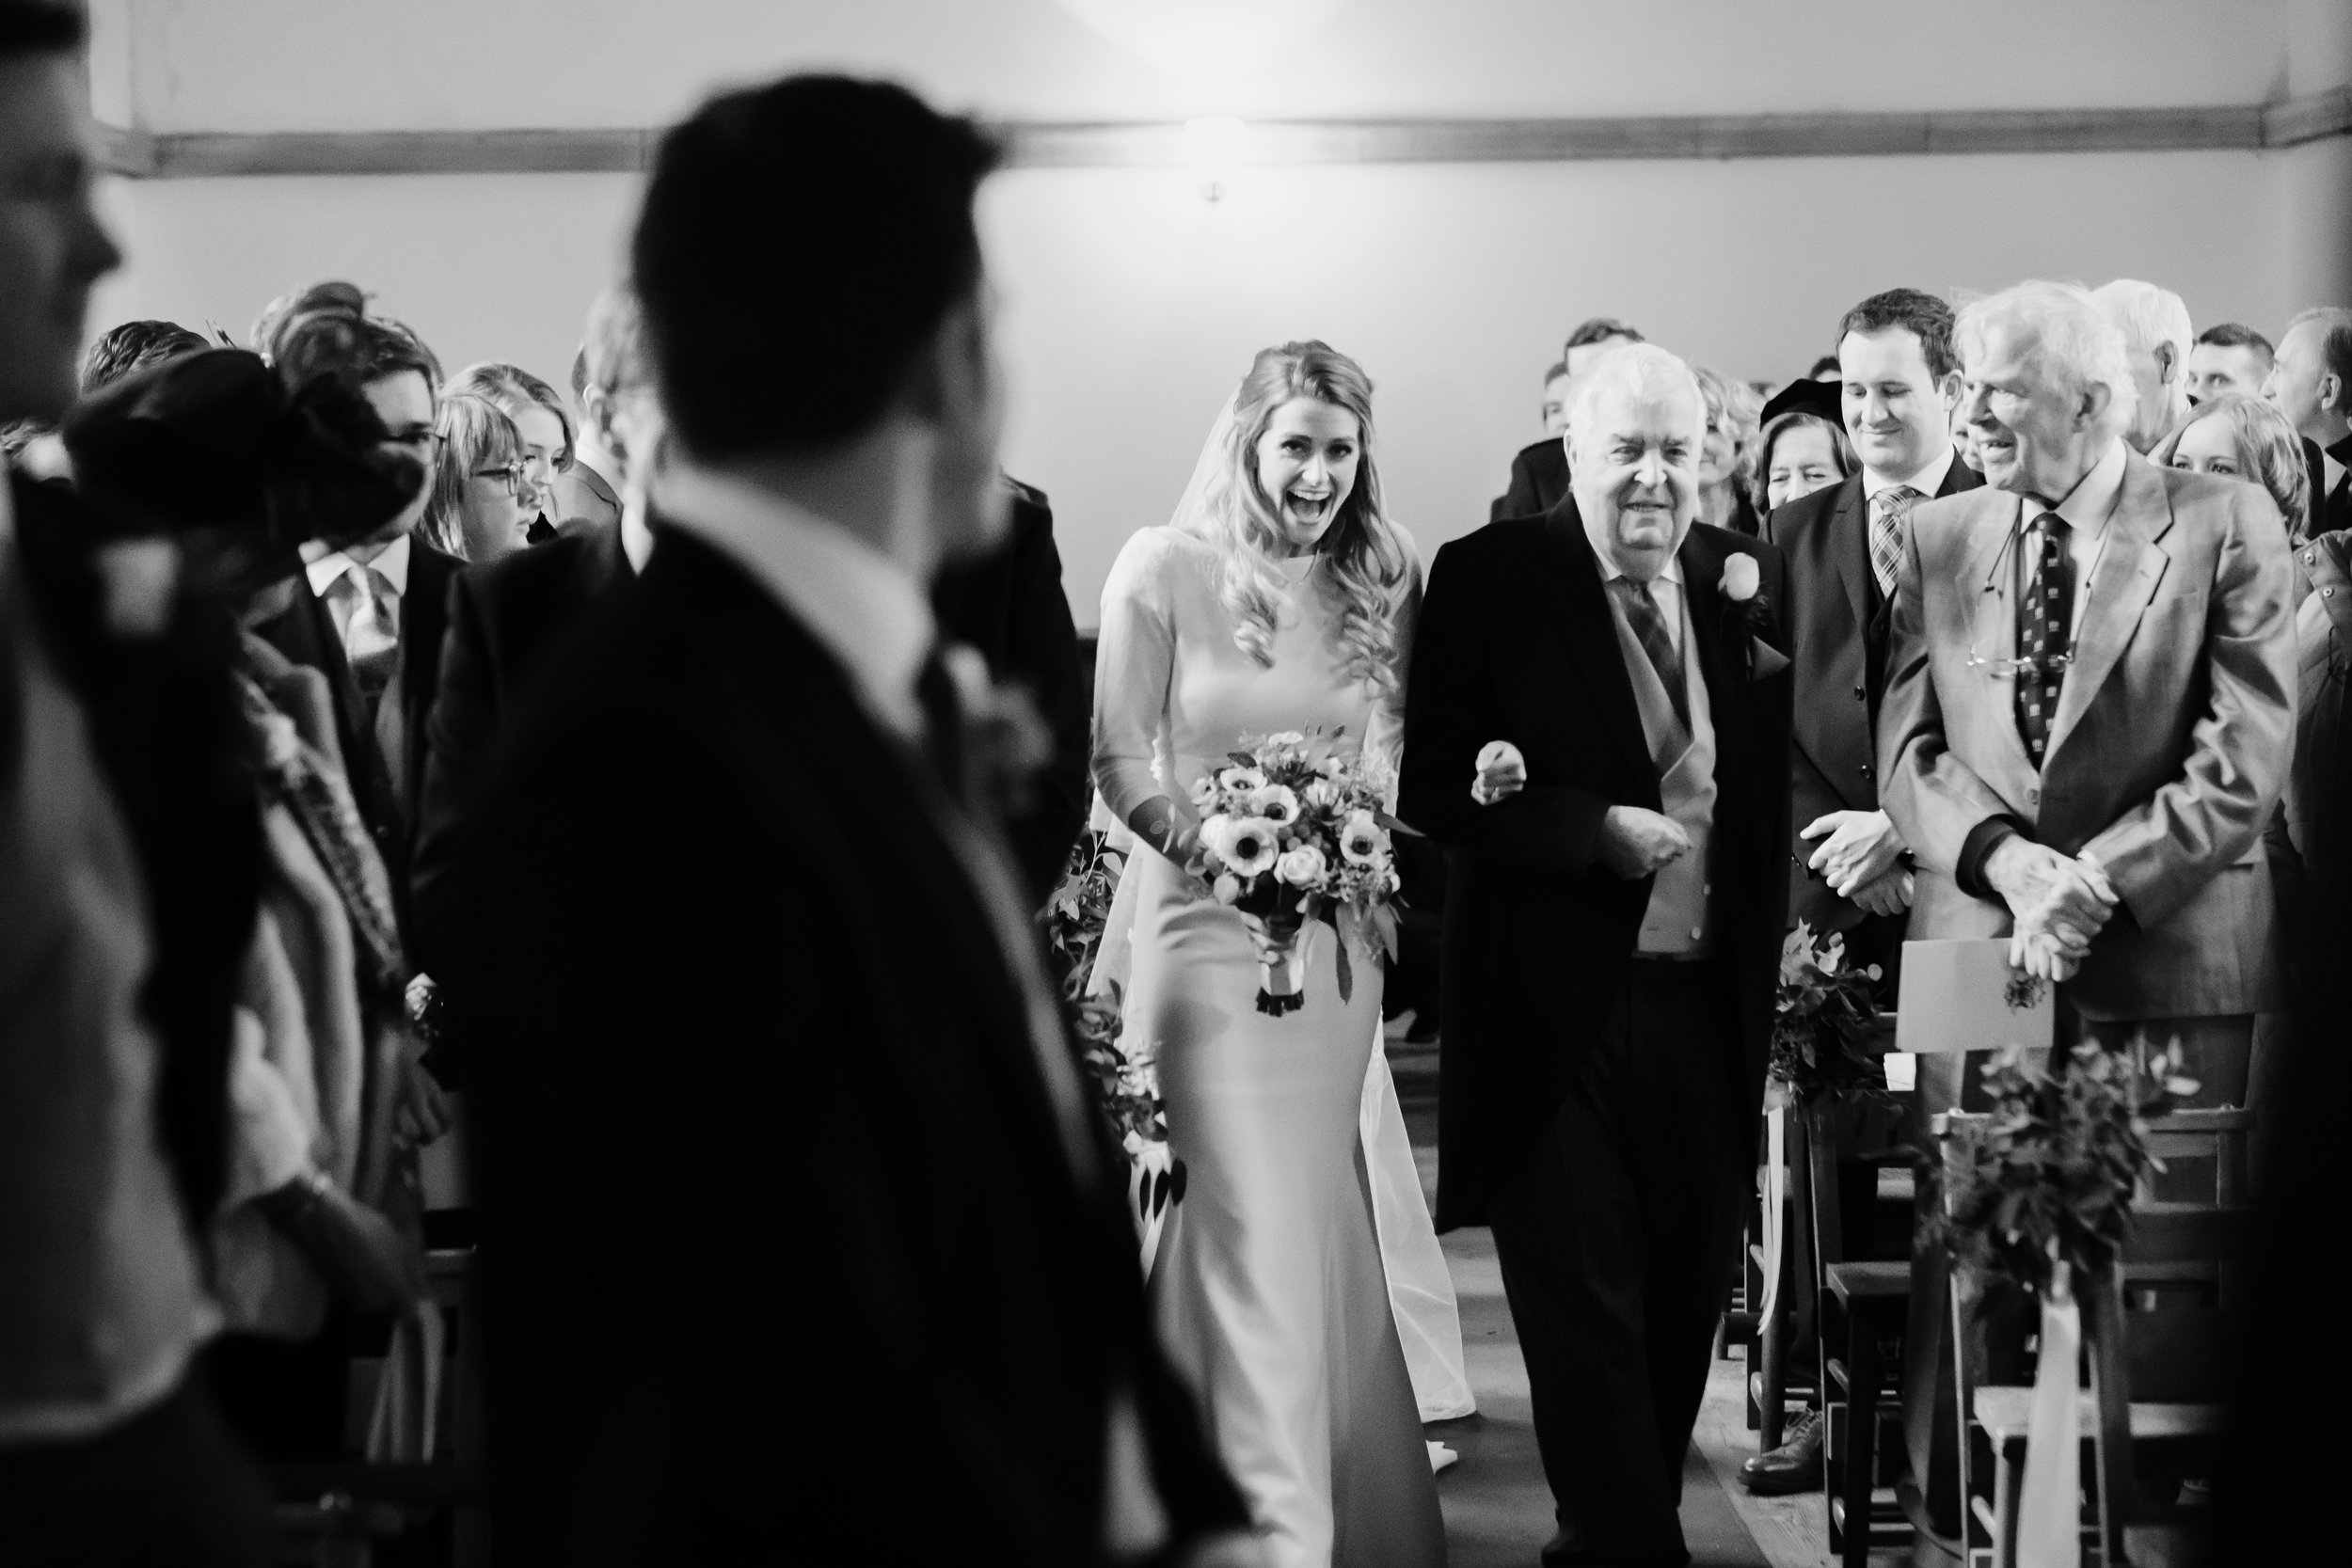 Bride with beaming smile as she walks down the aisle